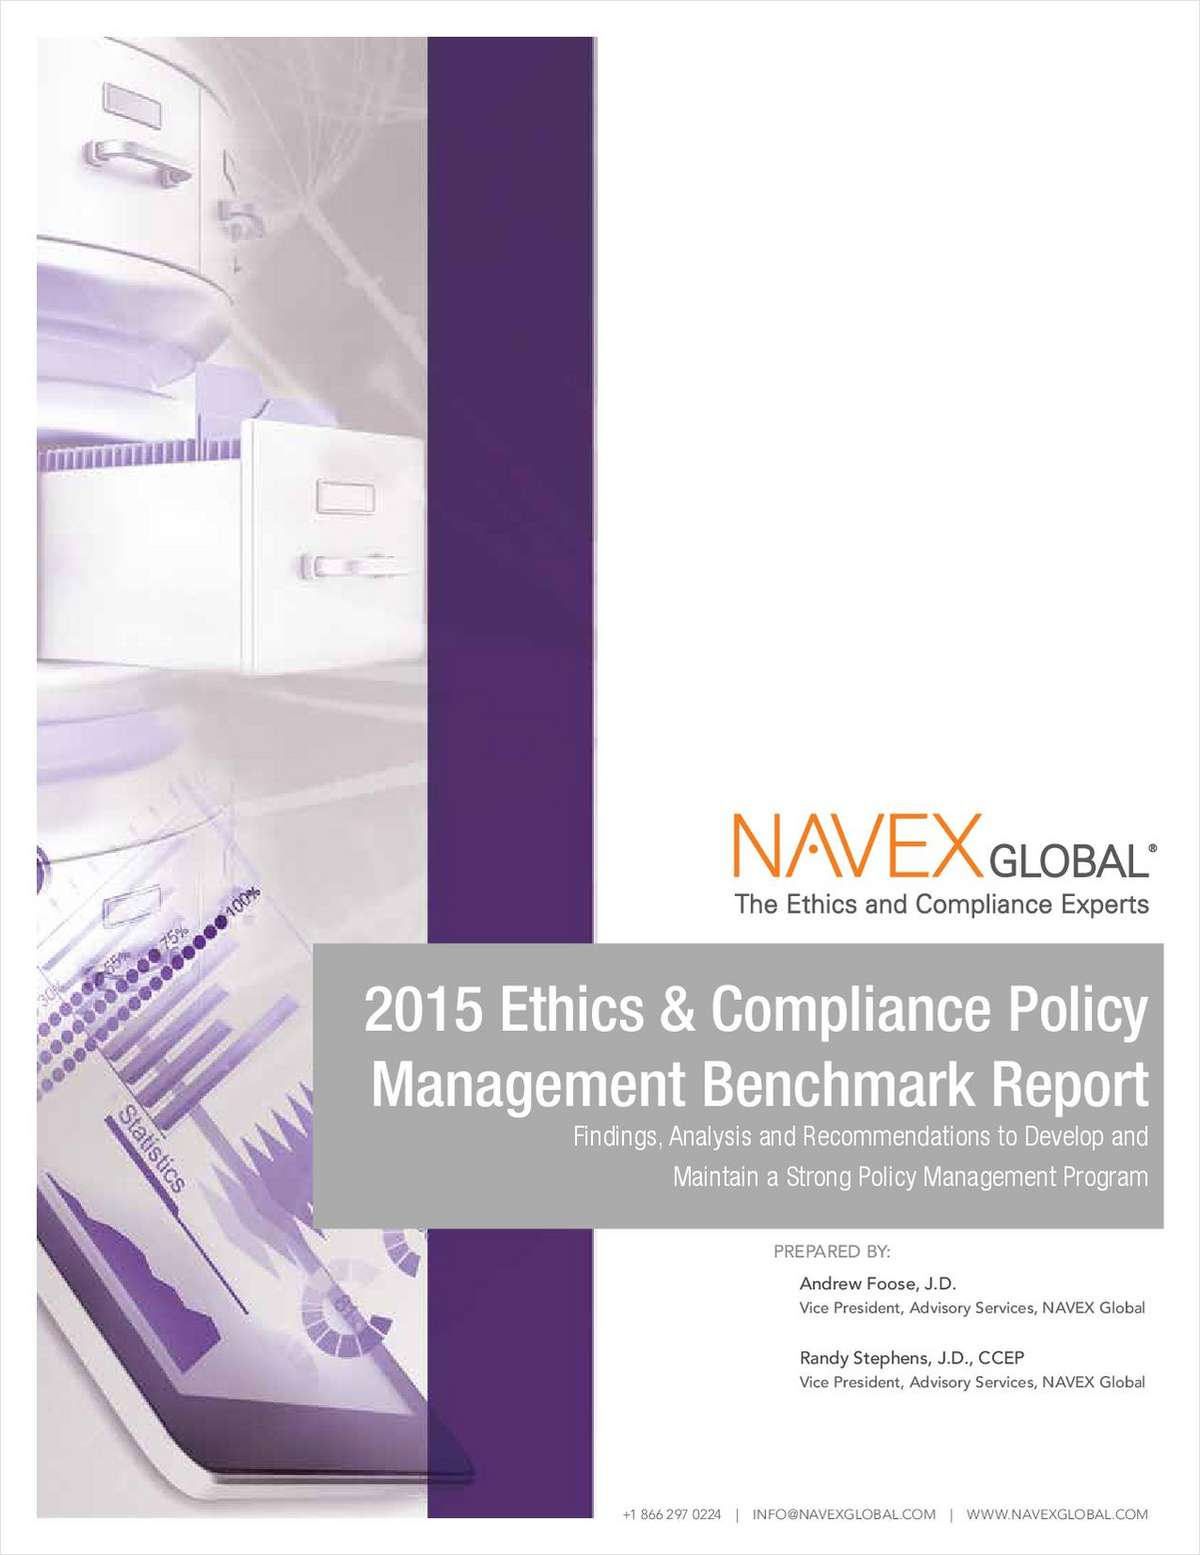 2015 Ethics & Compliance Policy Management Benchmark Report